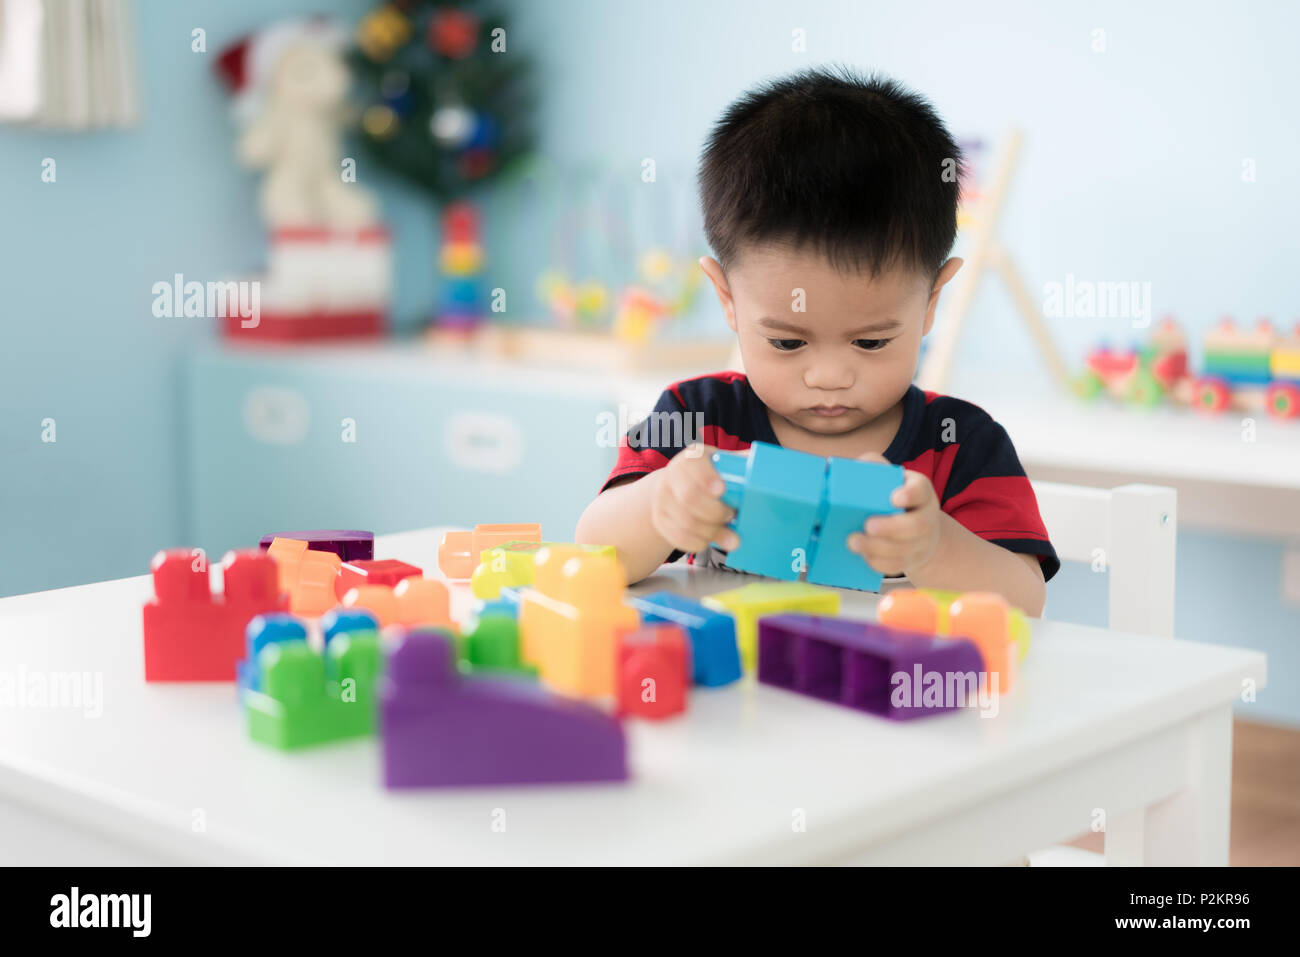 Adorable Asian Toddler baby boy sitting on chair and playing with color block toys at home. - Stock Image